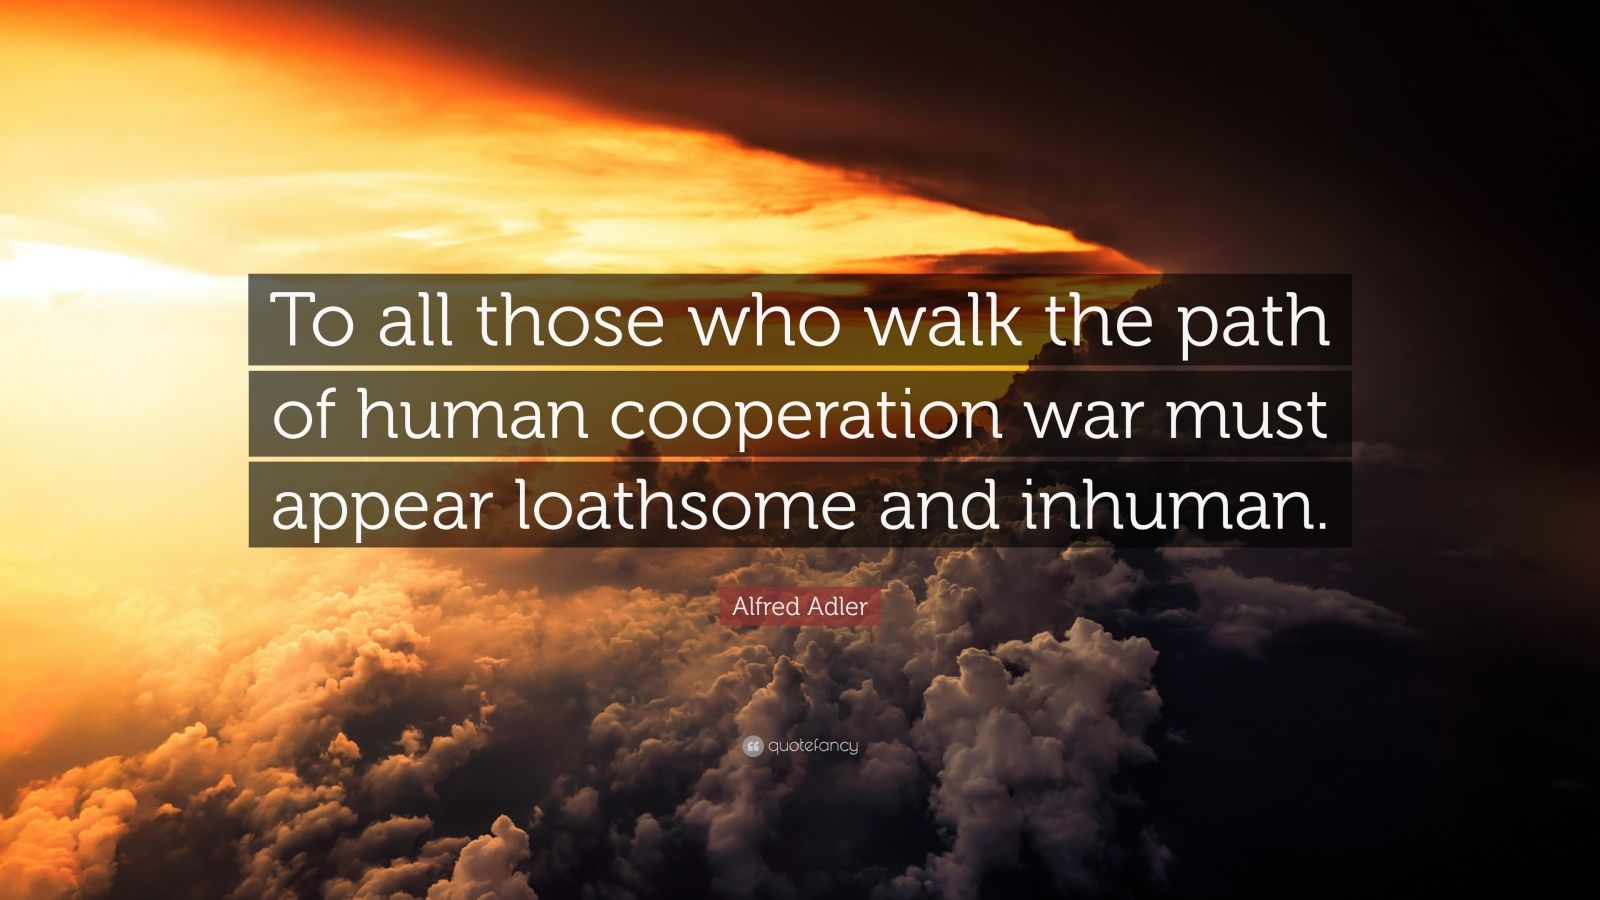 """Alfred Adler Quote: """"To all those who walk the path of human cooperation war must appear loathsome and inhuman."""""""